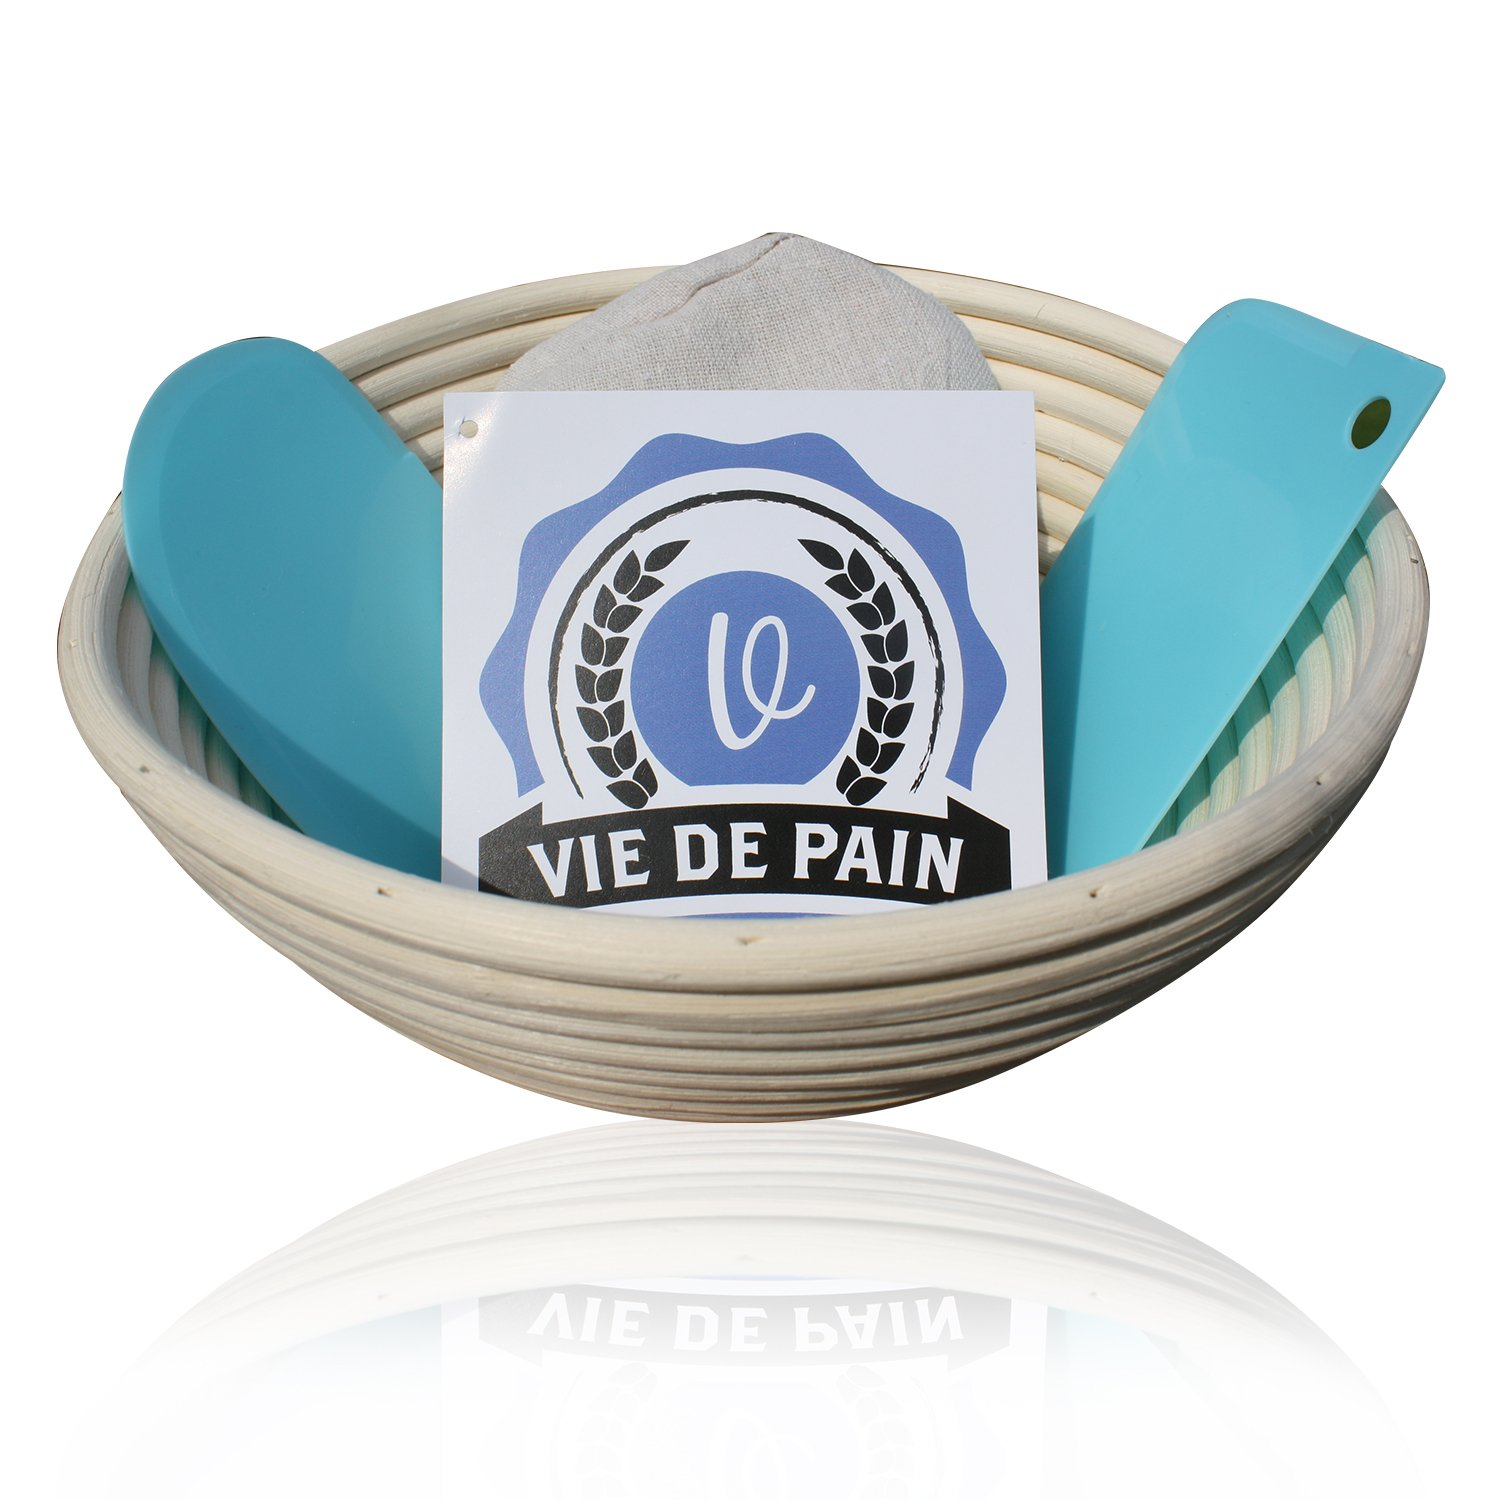 9 inch Round Banneton Bread Proofing Basket Set- Professional Brotform with Linen Liner and 2 Dough Scrapers- Perfect for Rising Sourdough, Boules and Other Artisan Bread Varieties! by Vie De Pain